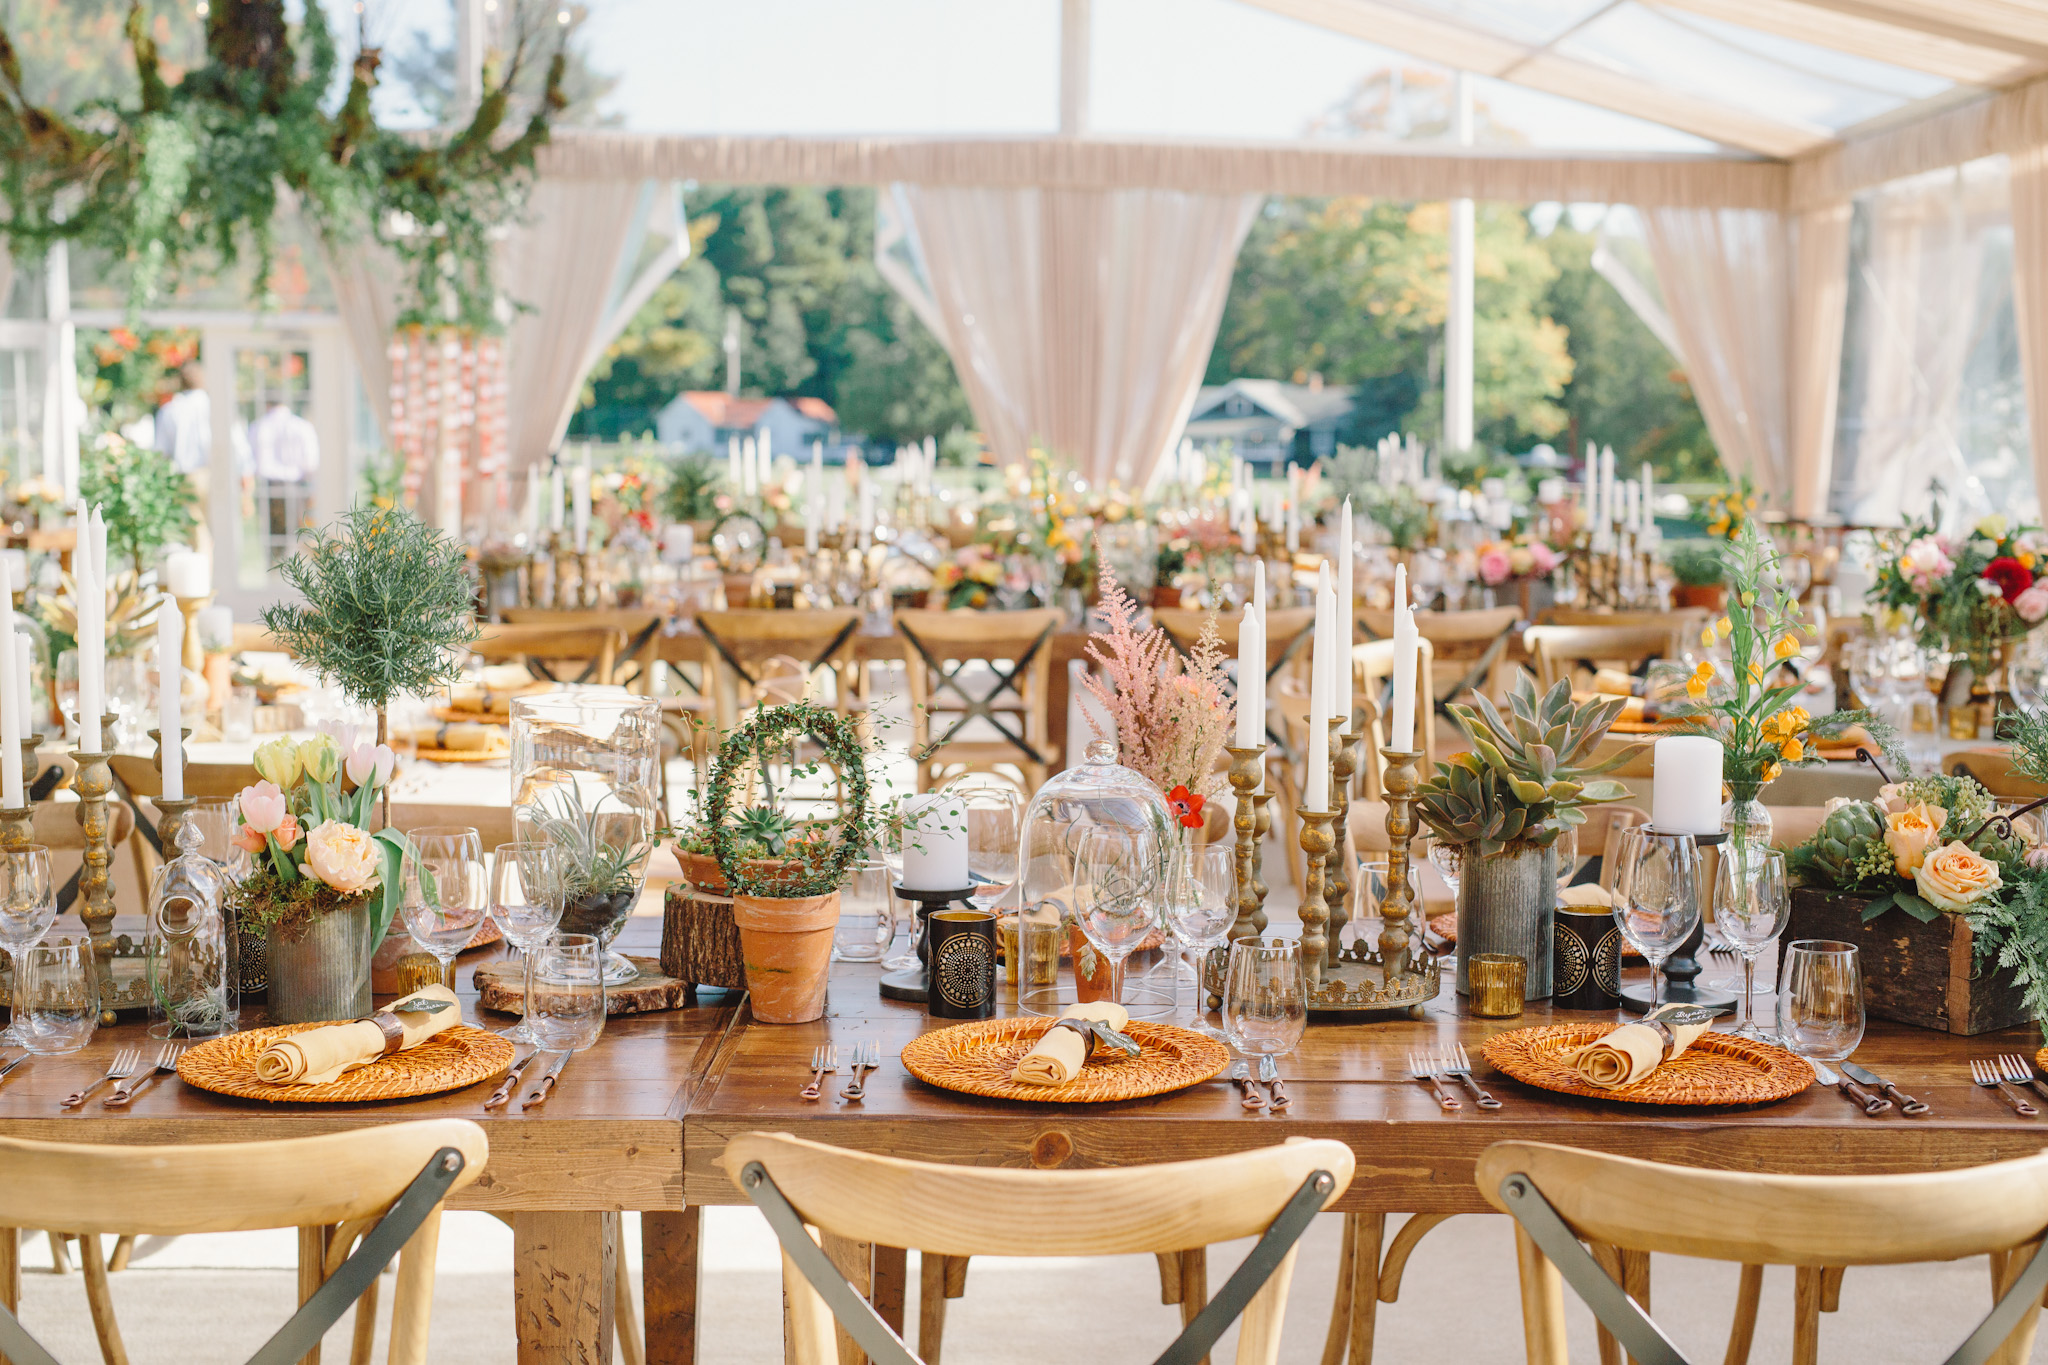 A Day in May, Event Planning & Design